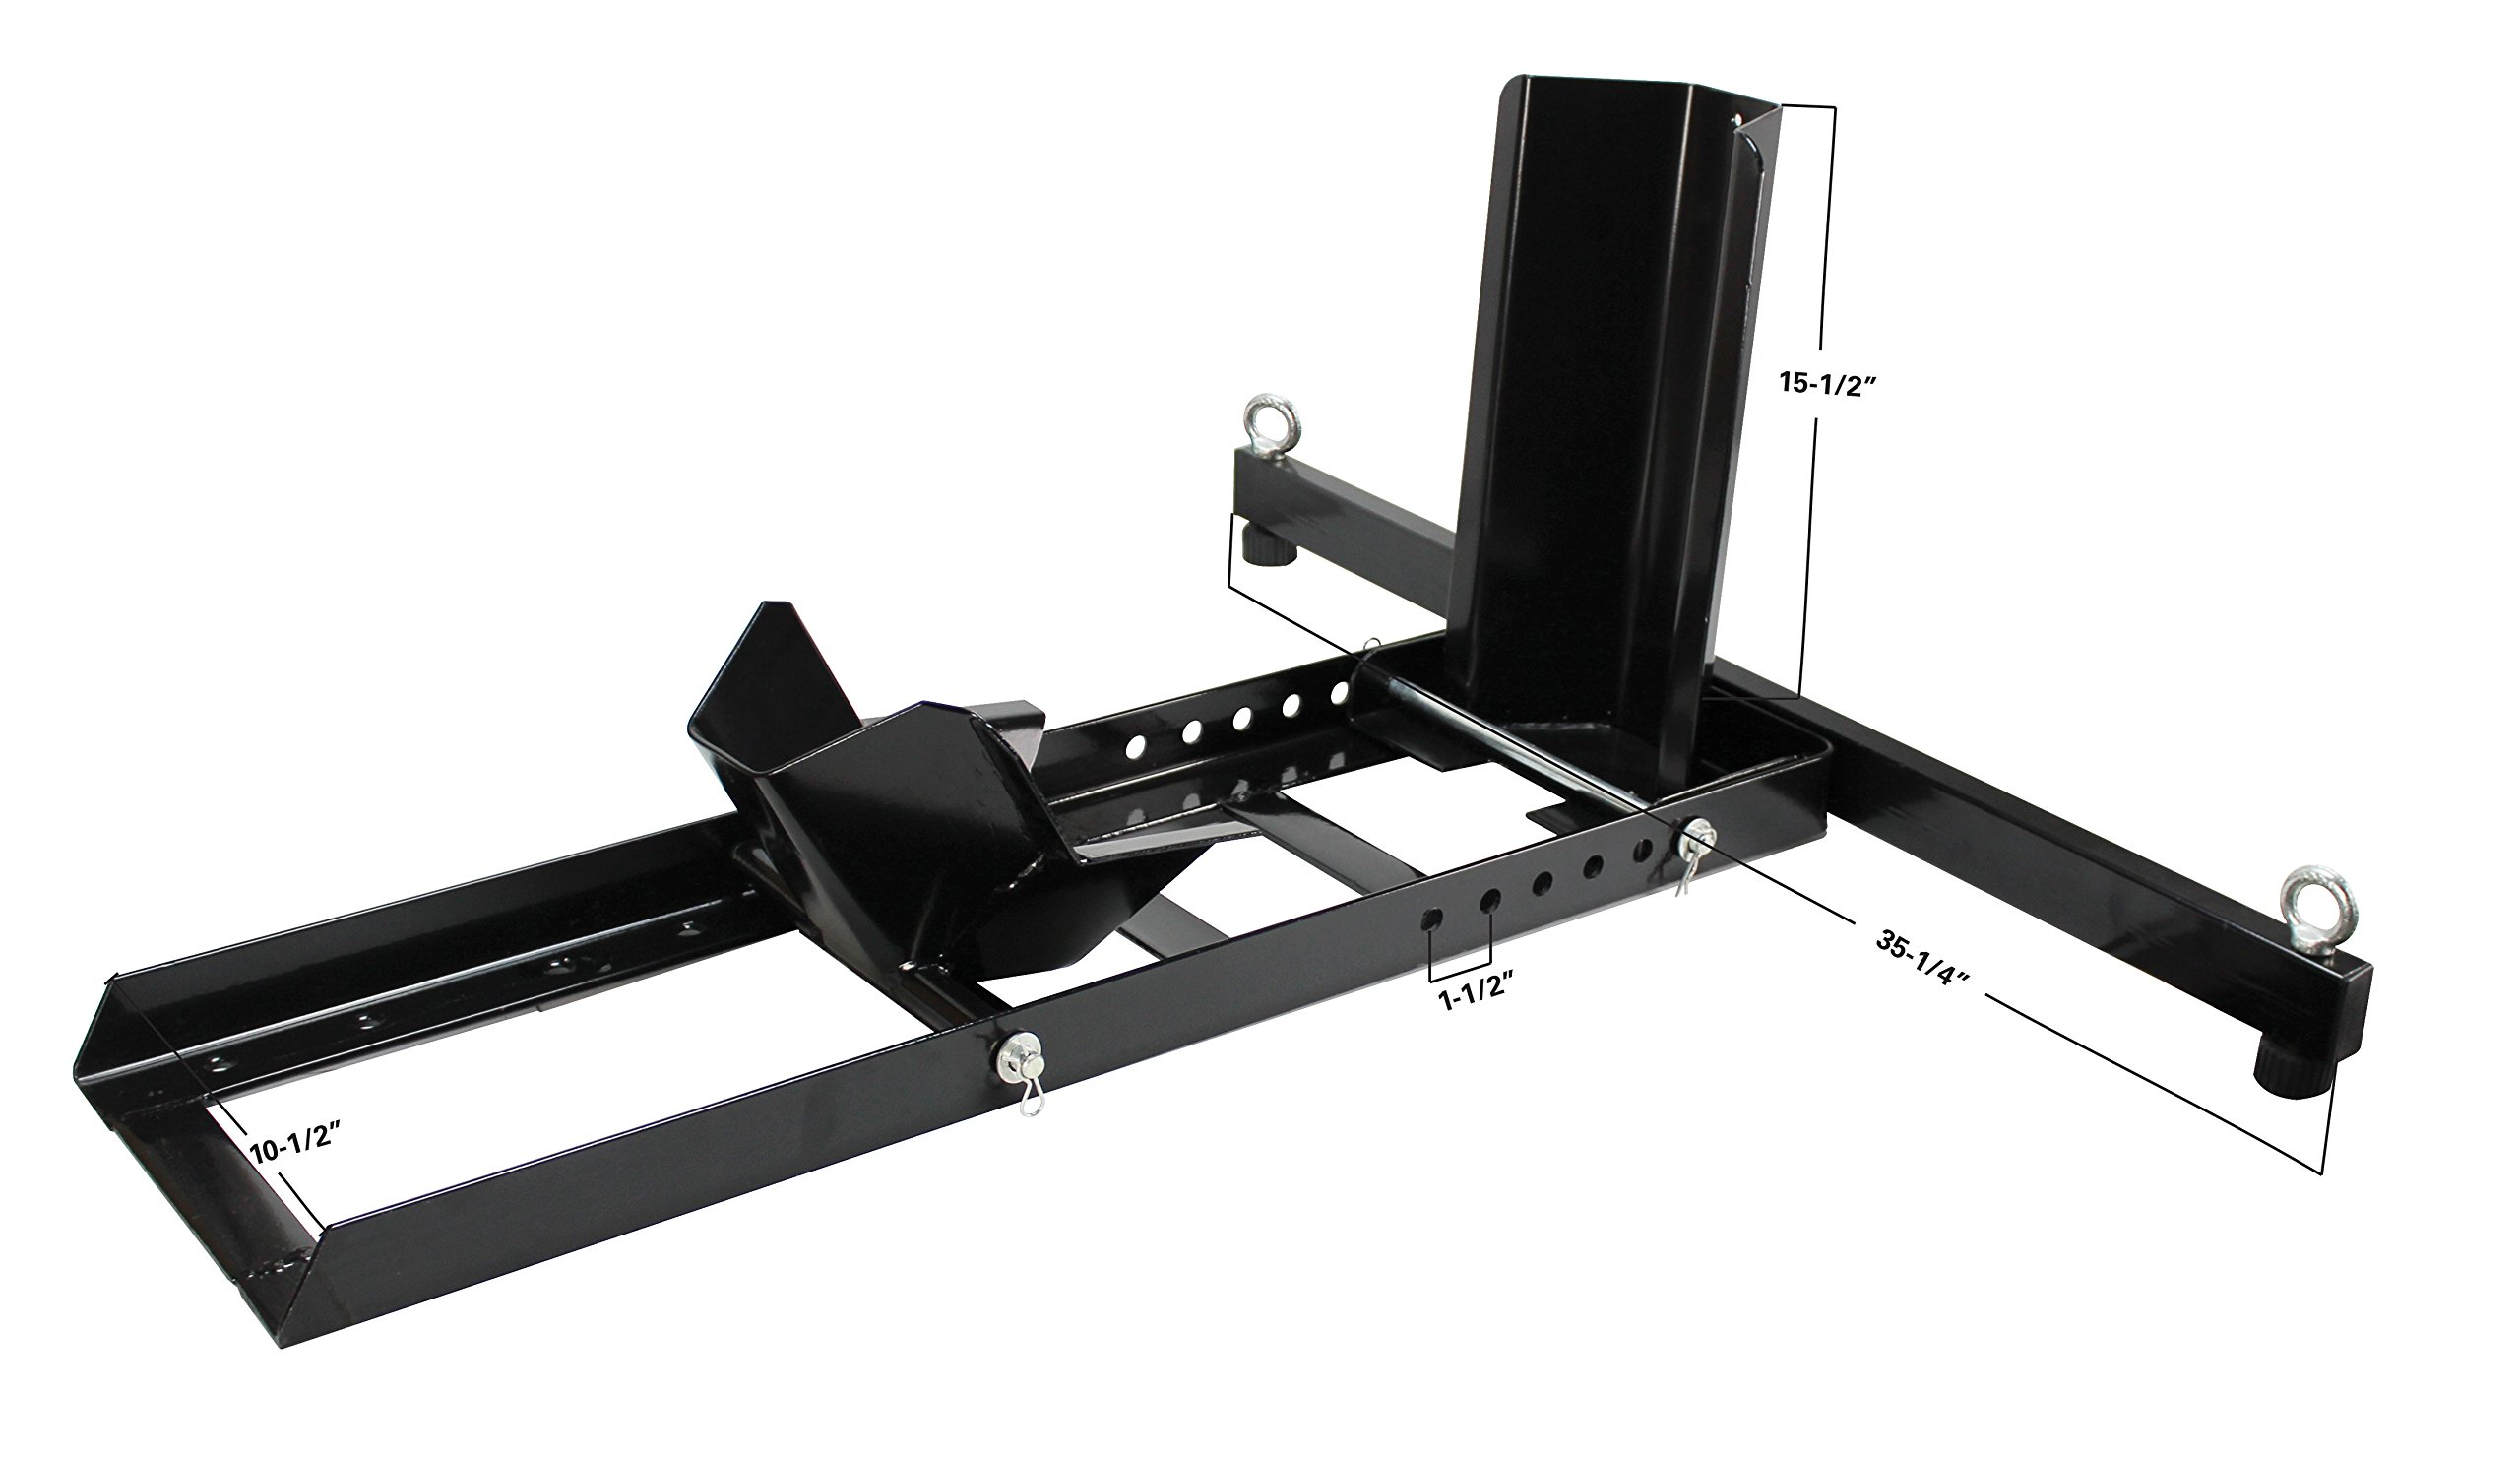 Extreme Max 5001.5757 Adjustable Motorcycle Stand/Wheel Chock-1,800 lbs by Extreme Max (Image #3)